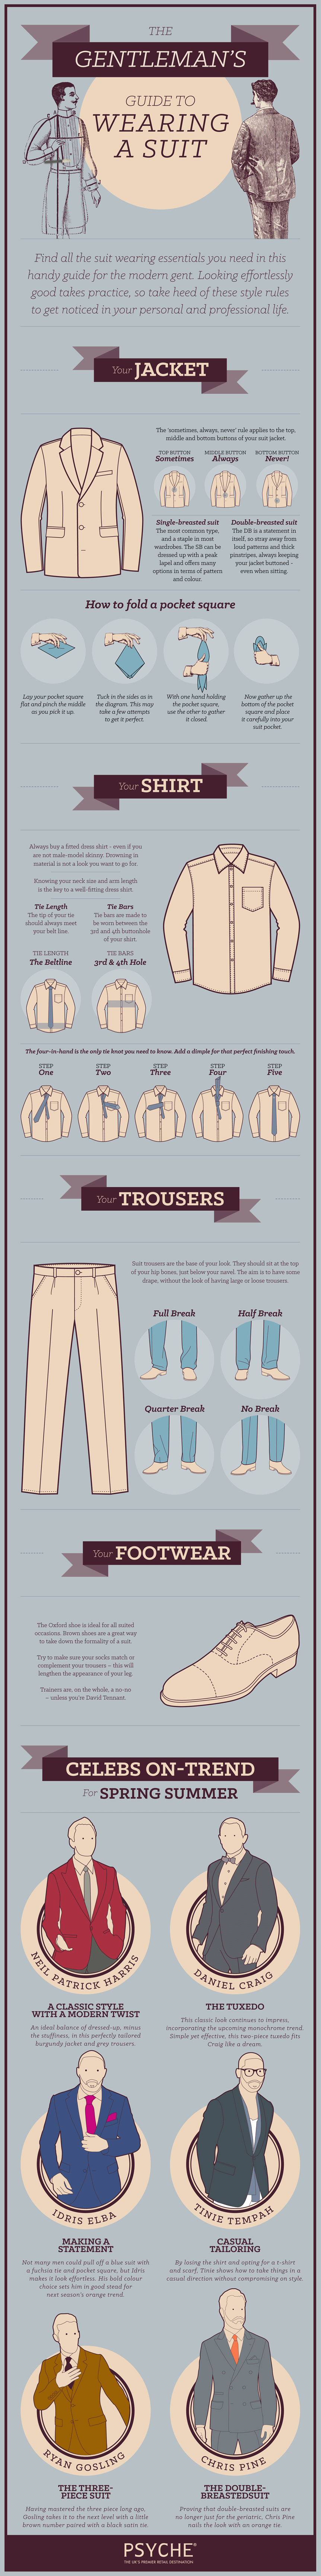 style-101-gentlemans-guide-to-wearing-suit-infographic-psyche-mediaworks